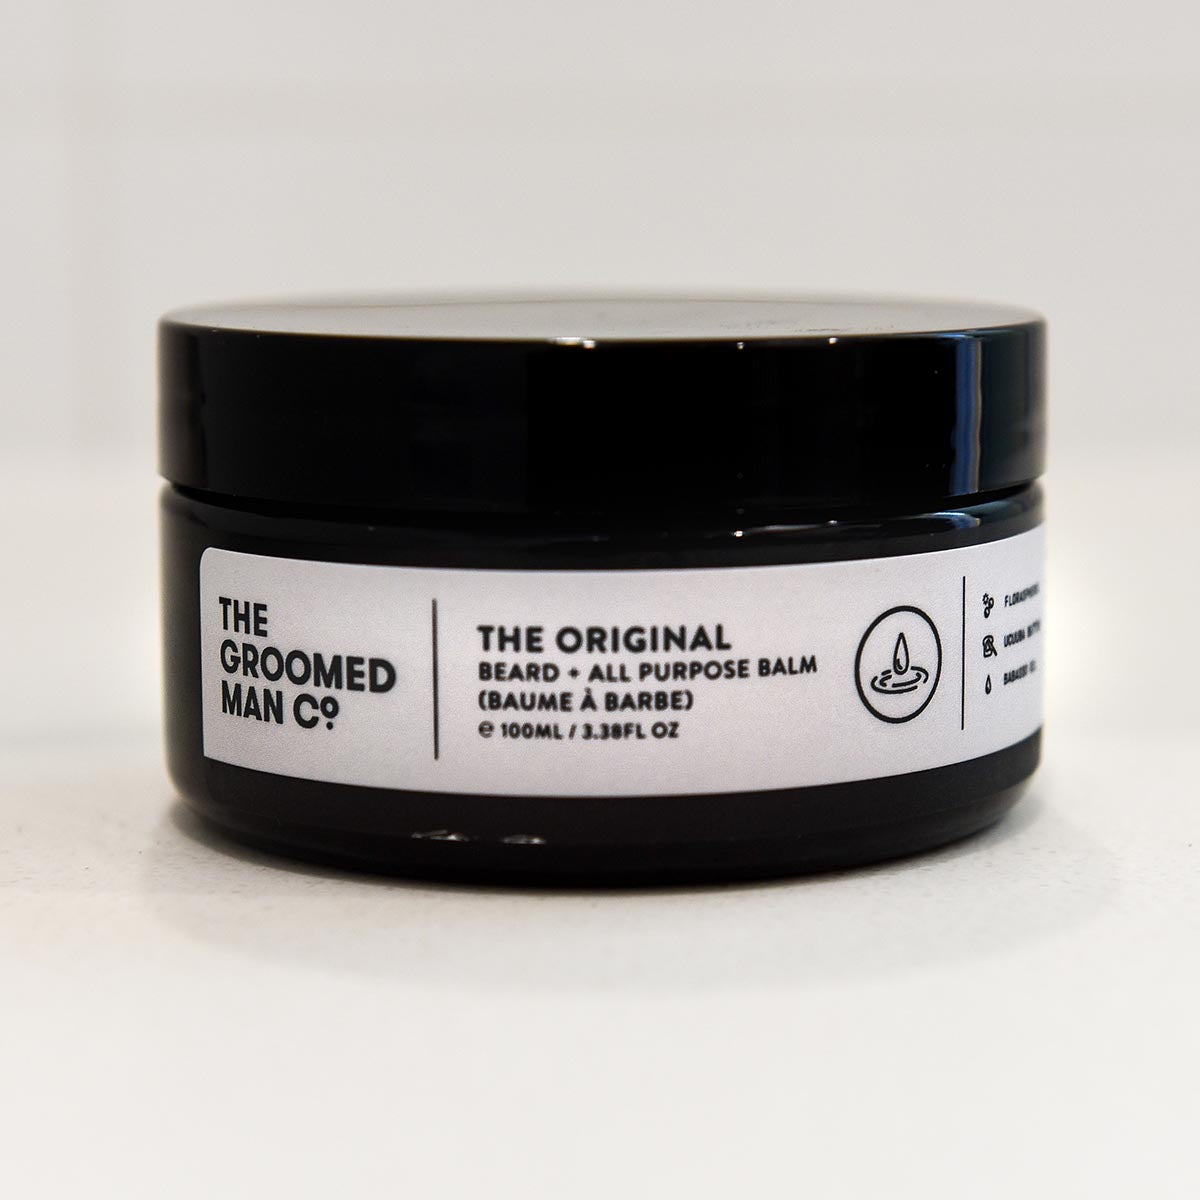 Men's Original Beard Balm